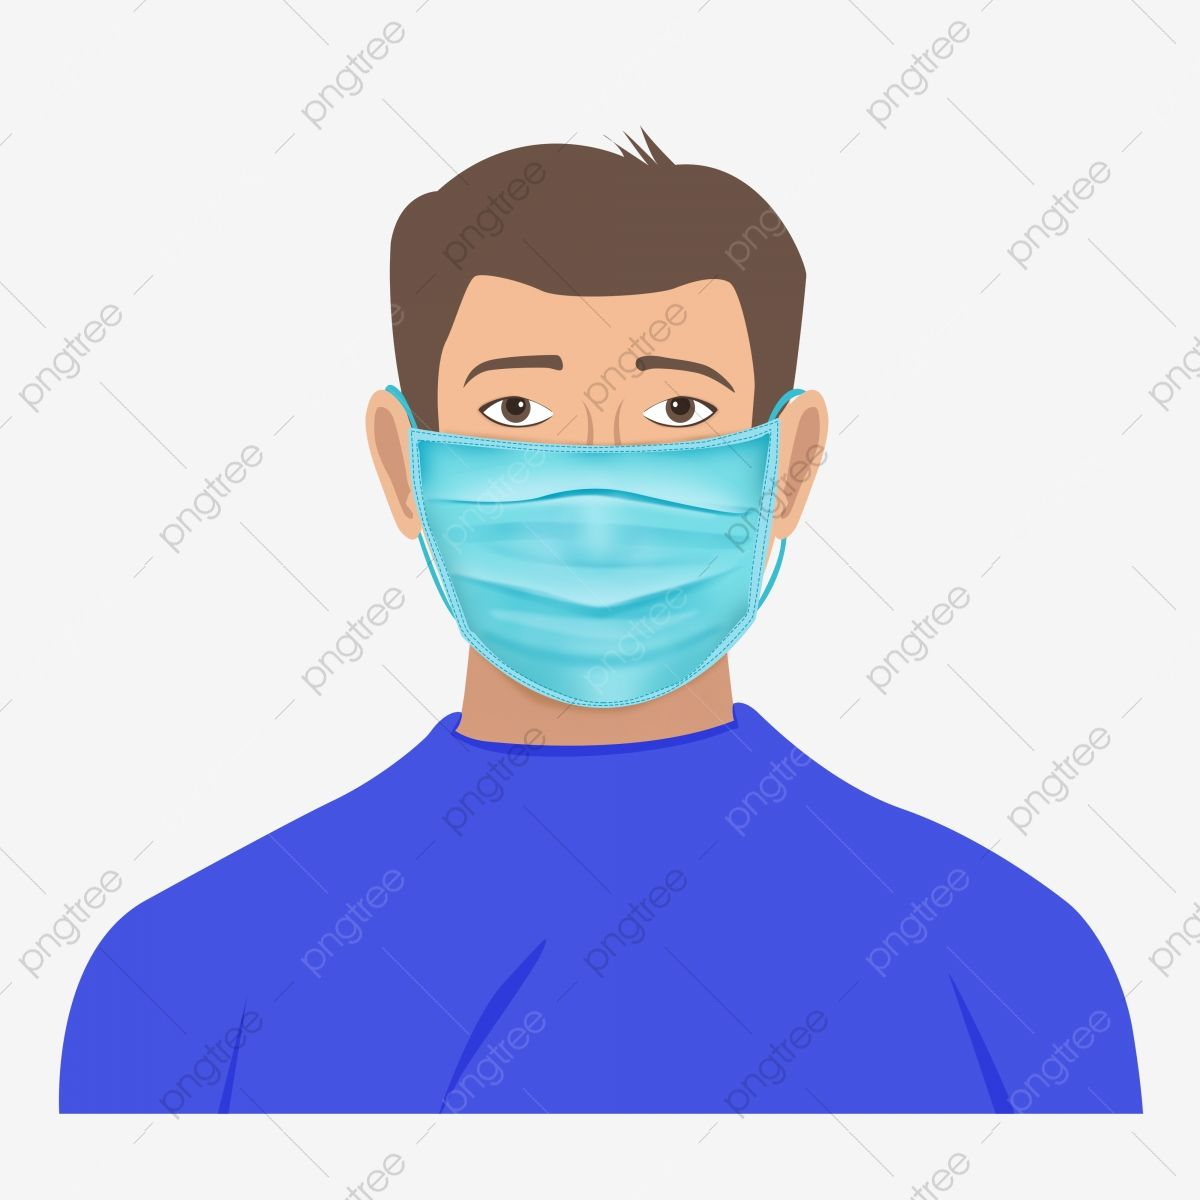 Medical Protection Mask Wearing Boy Sick Clipart Mask Wear Boy With Mask Png Transparent Clipart Image And Psd File For Free Download Geometric Pattern Background Graphic Resources Medical Illustration